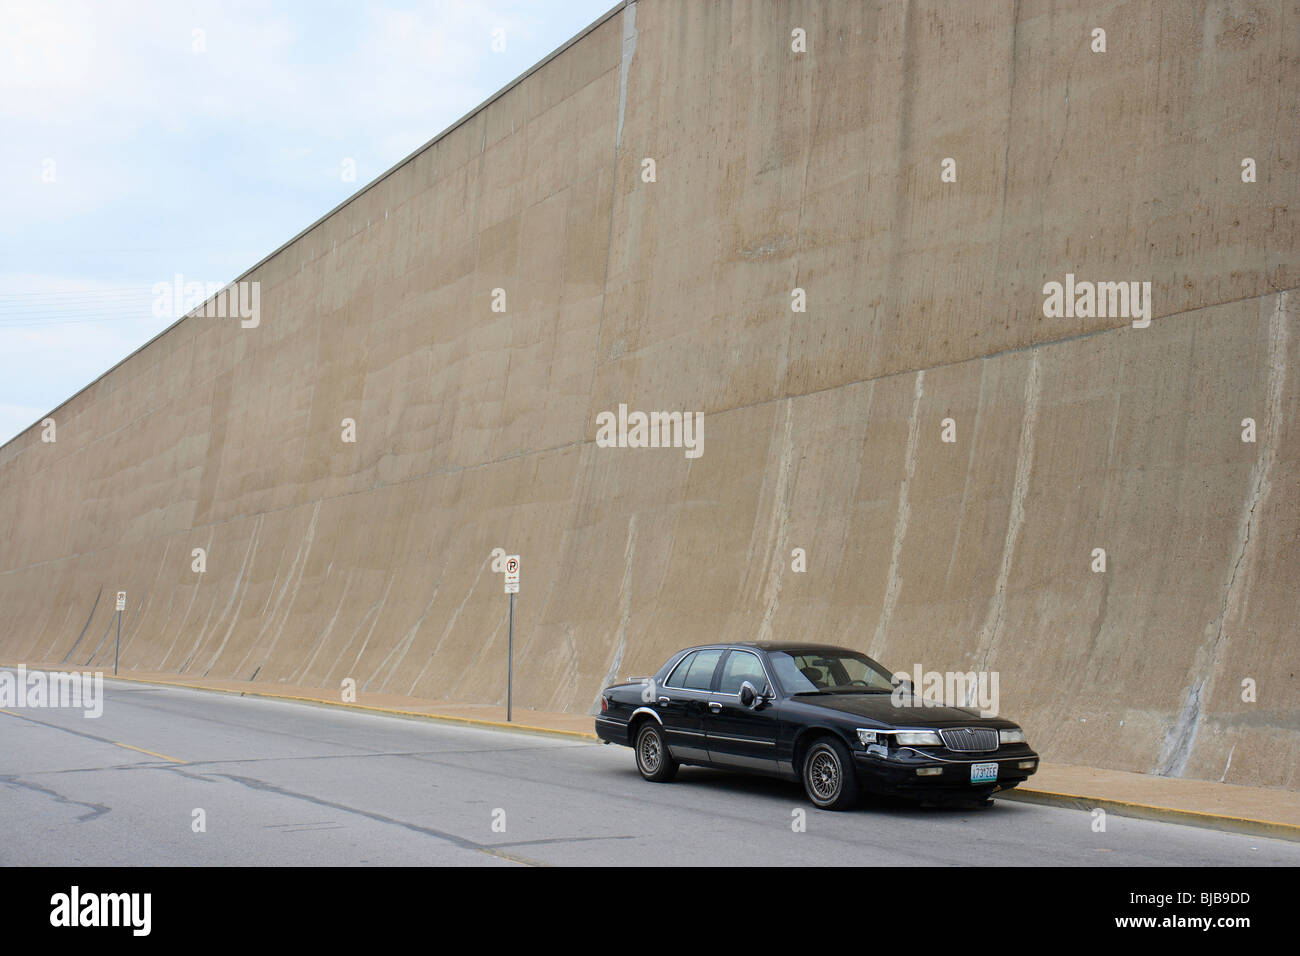 Broken car parked at a flood wall, St. Louis, USA - Stock Image